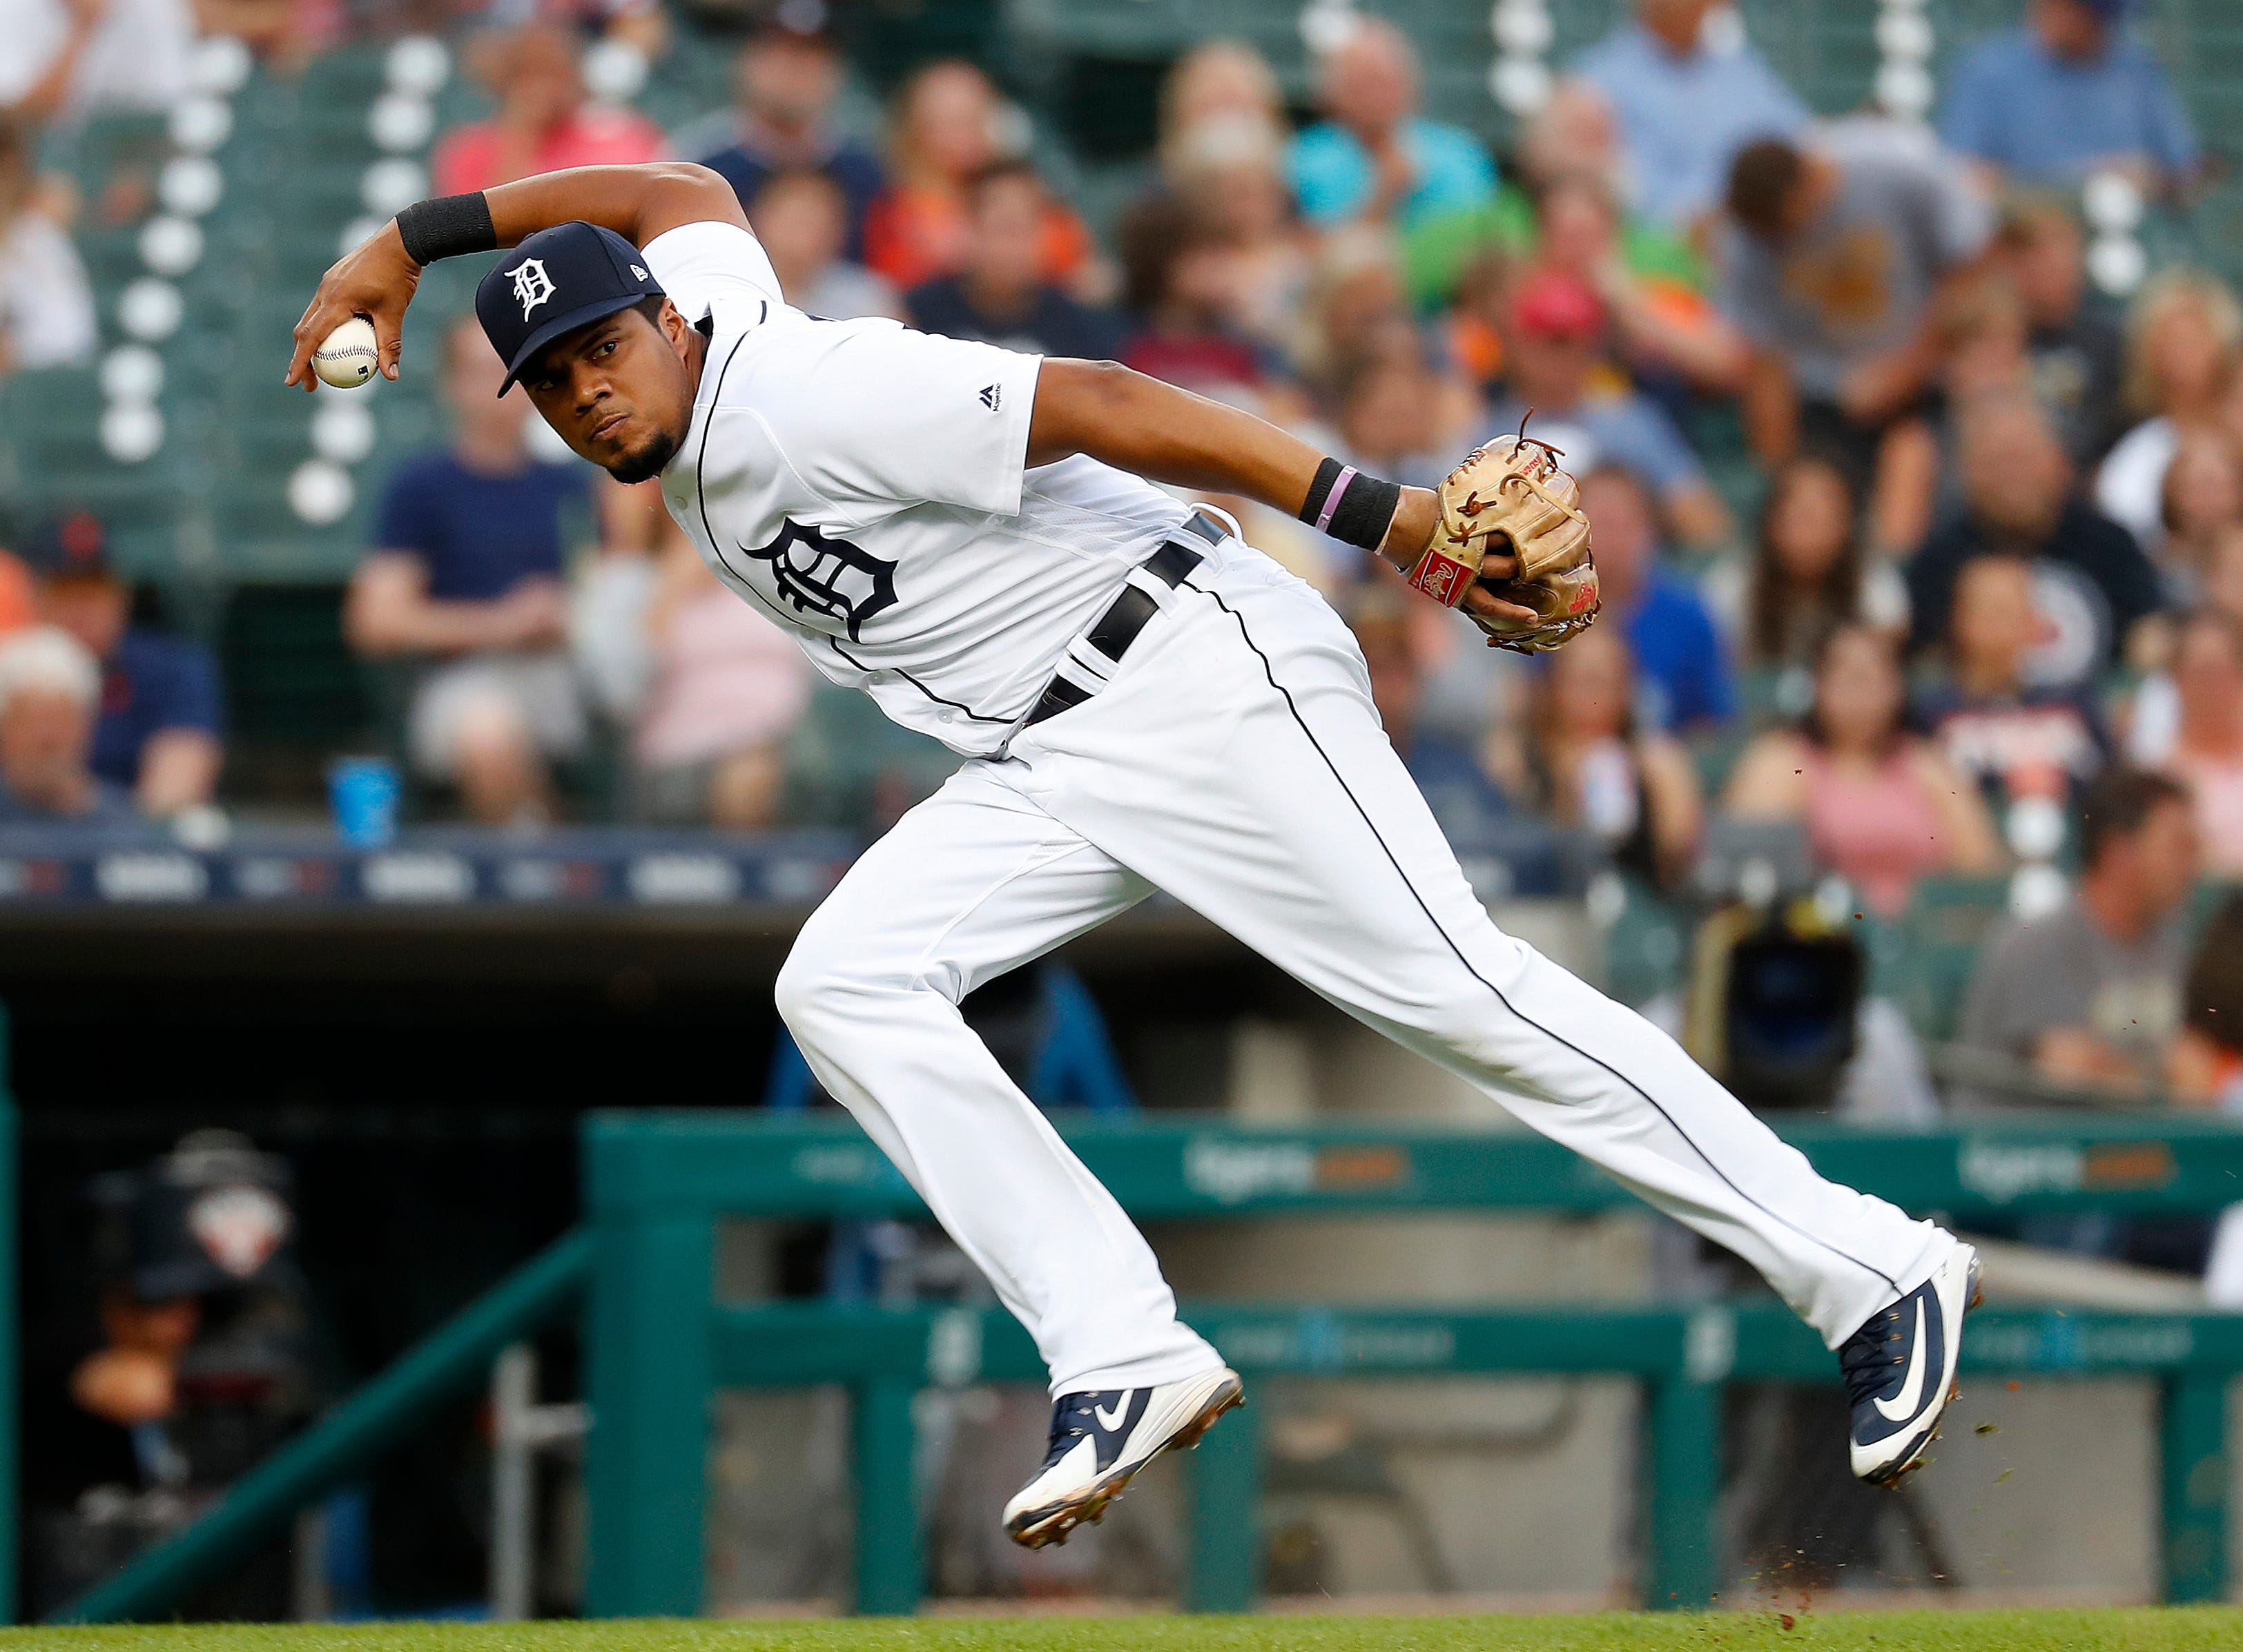 Detroit Tigers third baseman Jeimer Candelario throws to first base on Chicago White Sox's Yolmer Sanchez bunt single in the third inning.